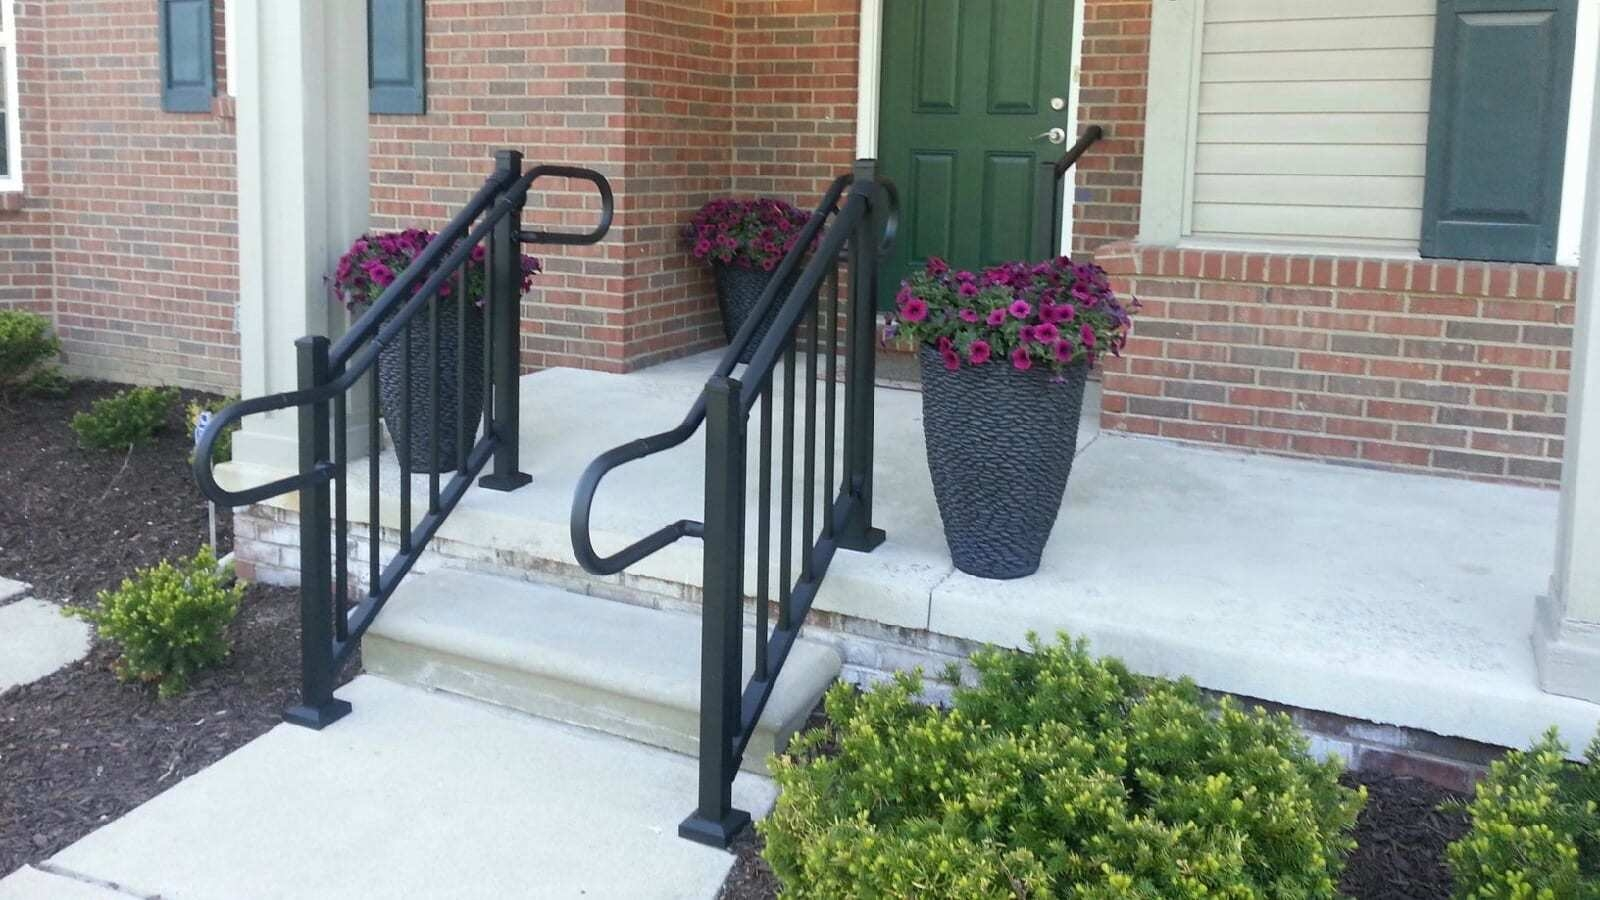 Handrail Return Requirements Aluminum Handrail Direct | Disabled Handrails For Outside Steps | Elderly | Full Width | 2 Step | Outdoor | Industrial Pipe